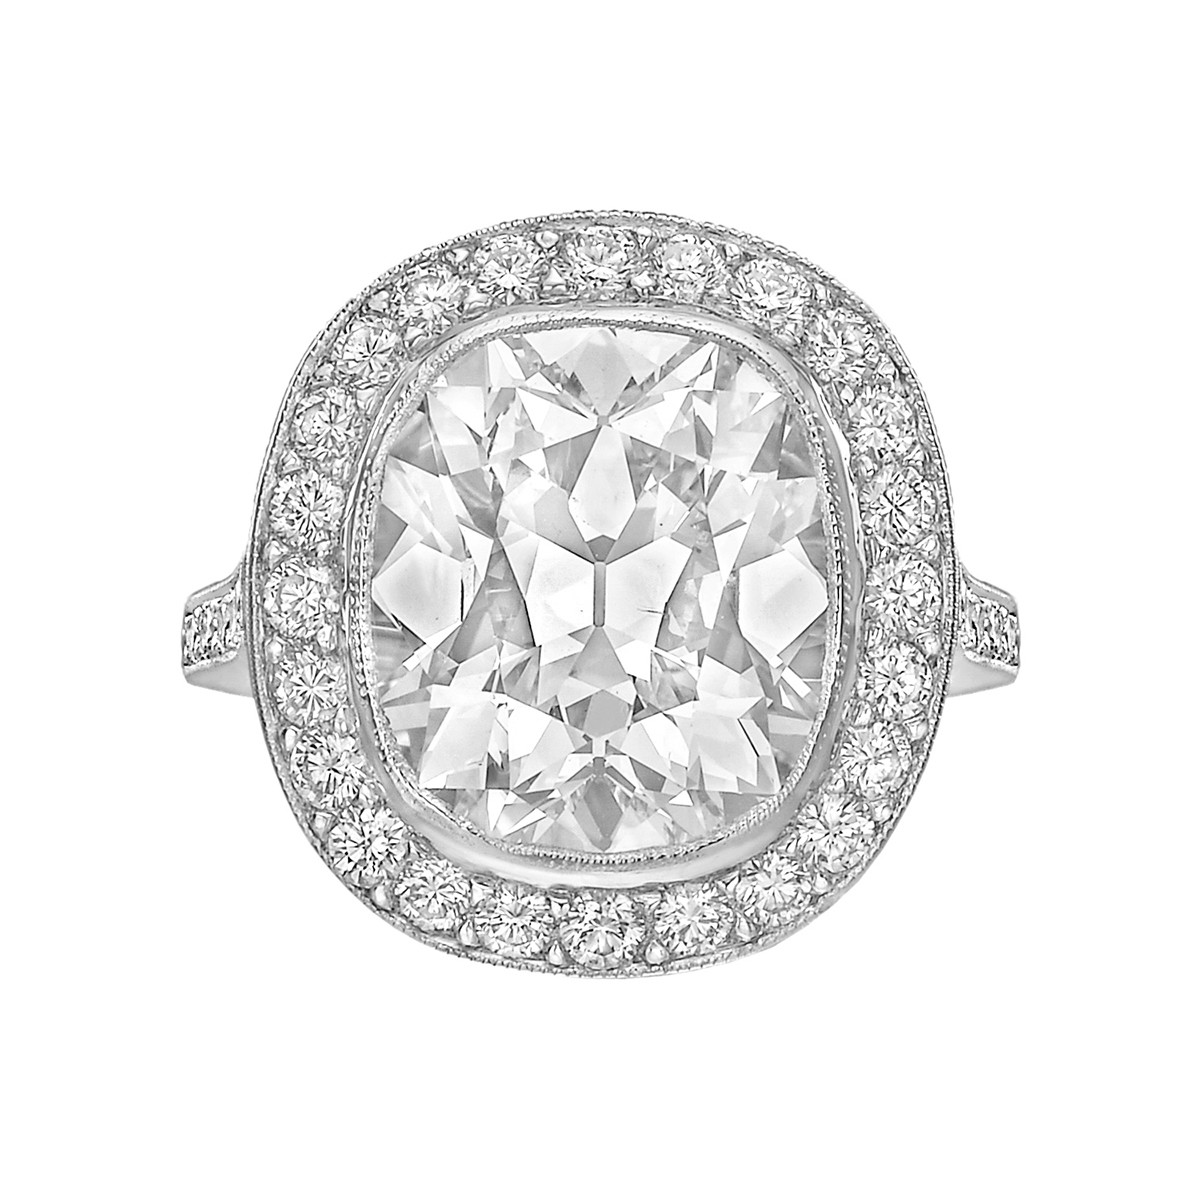 6.61 Carat Cushion-Cut Diamond Ring